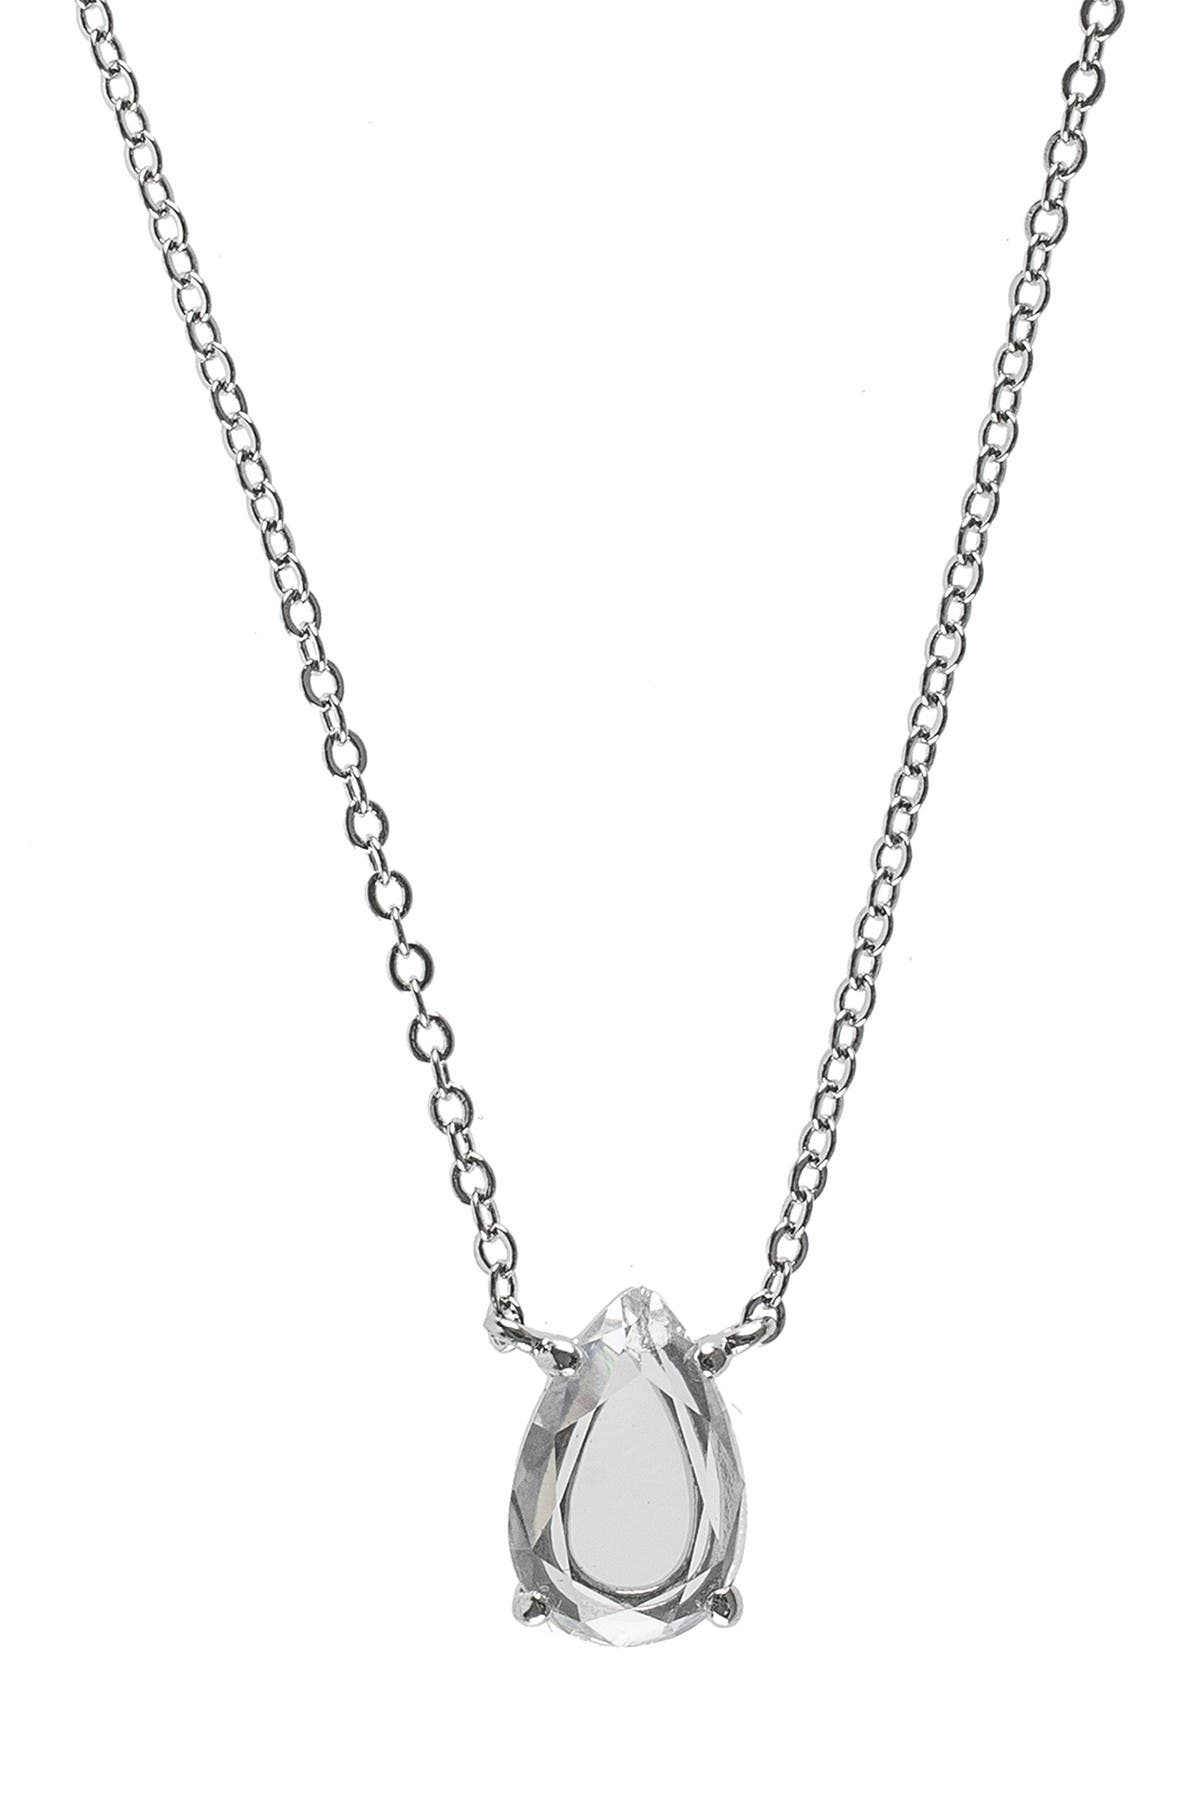 Image of CZ By Kenneth Jay Lane Prong Set Faceted Pear CZ Necklace